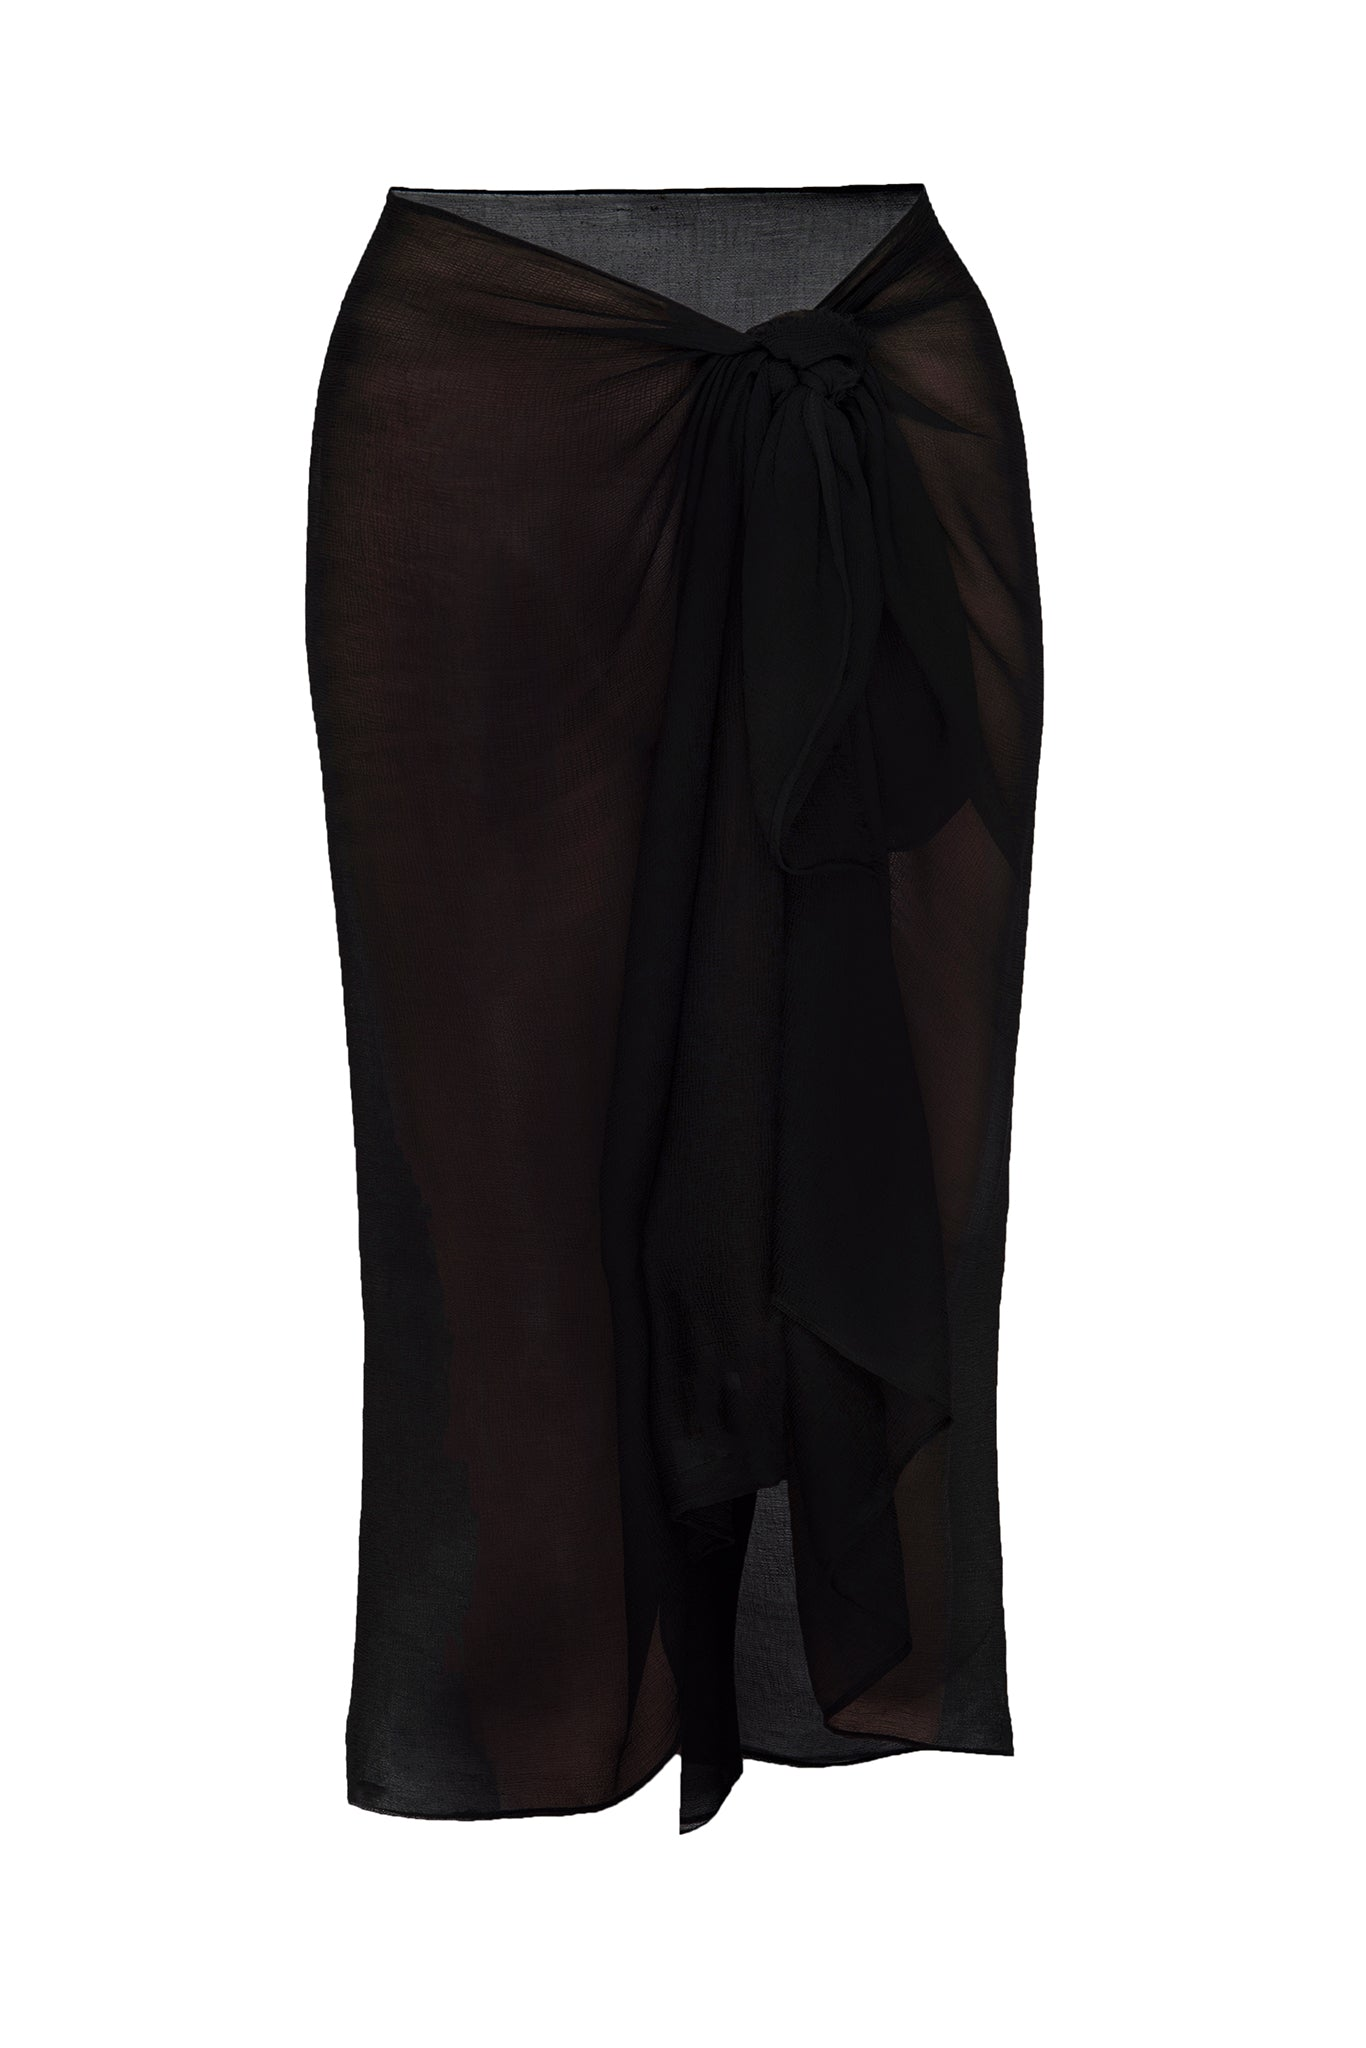 Load image into Gallery viewer, Mykonos Chiffon Sarong - Black